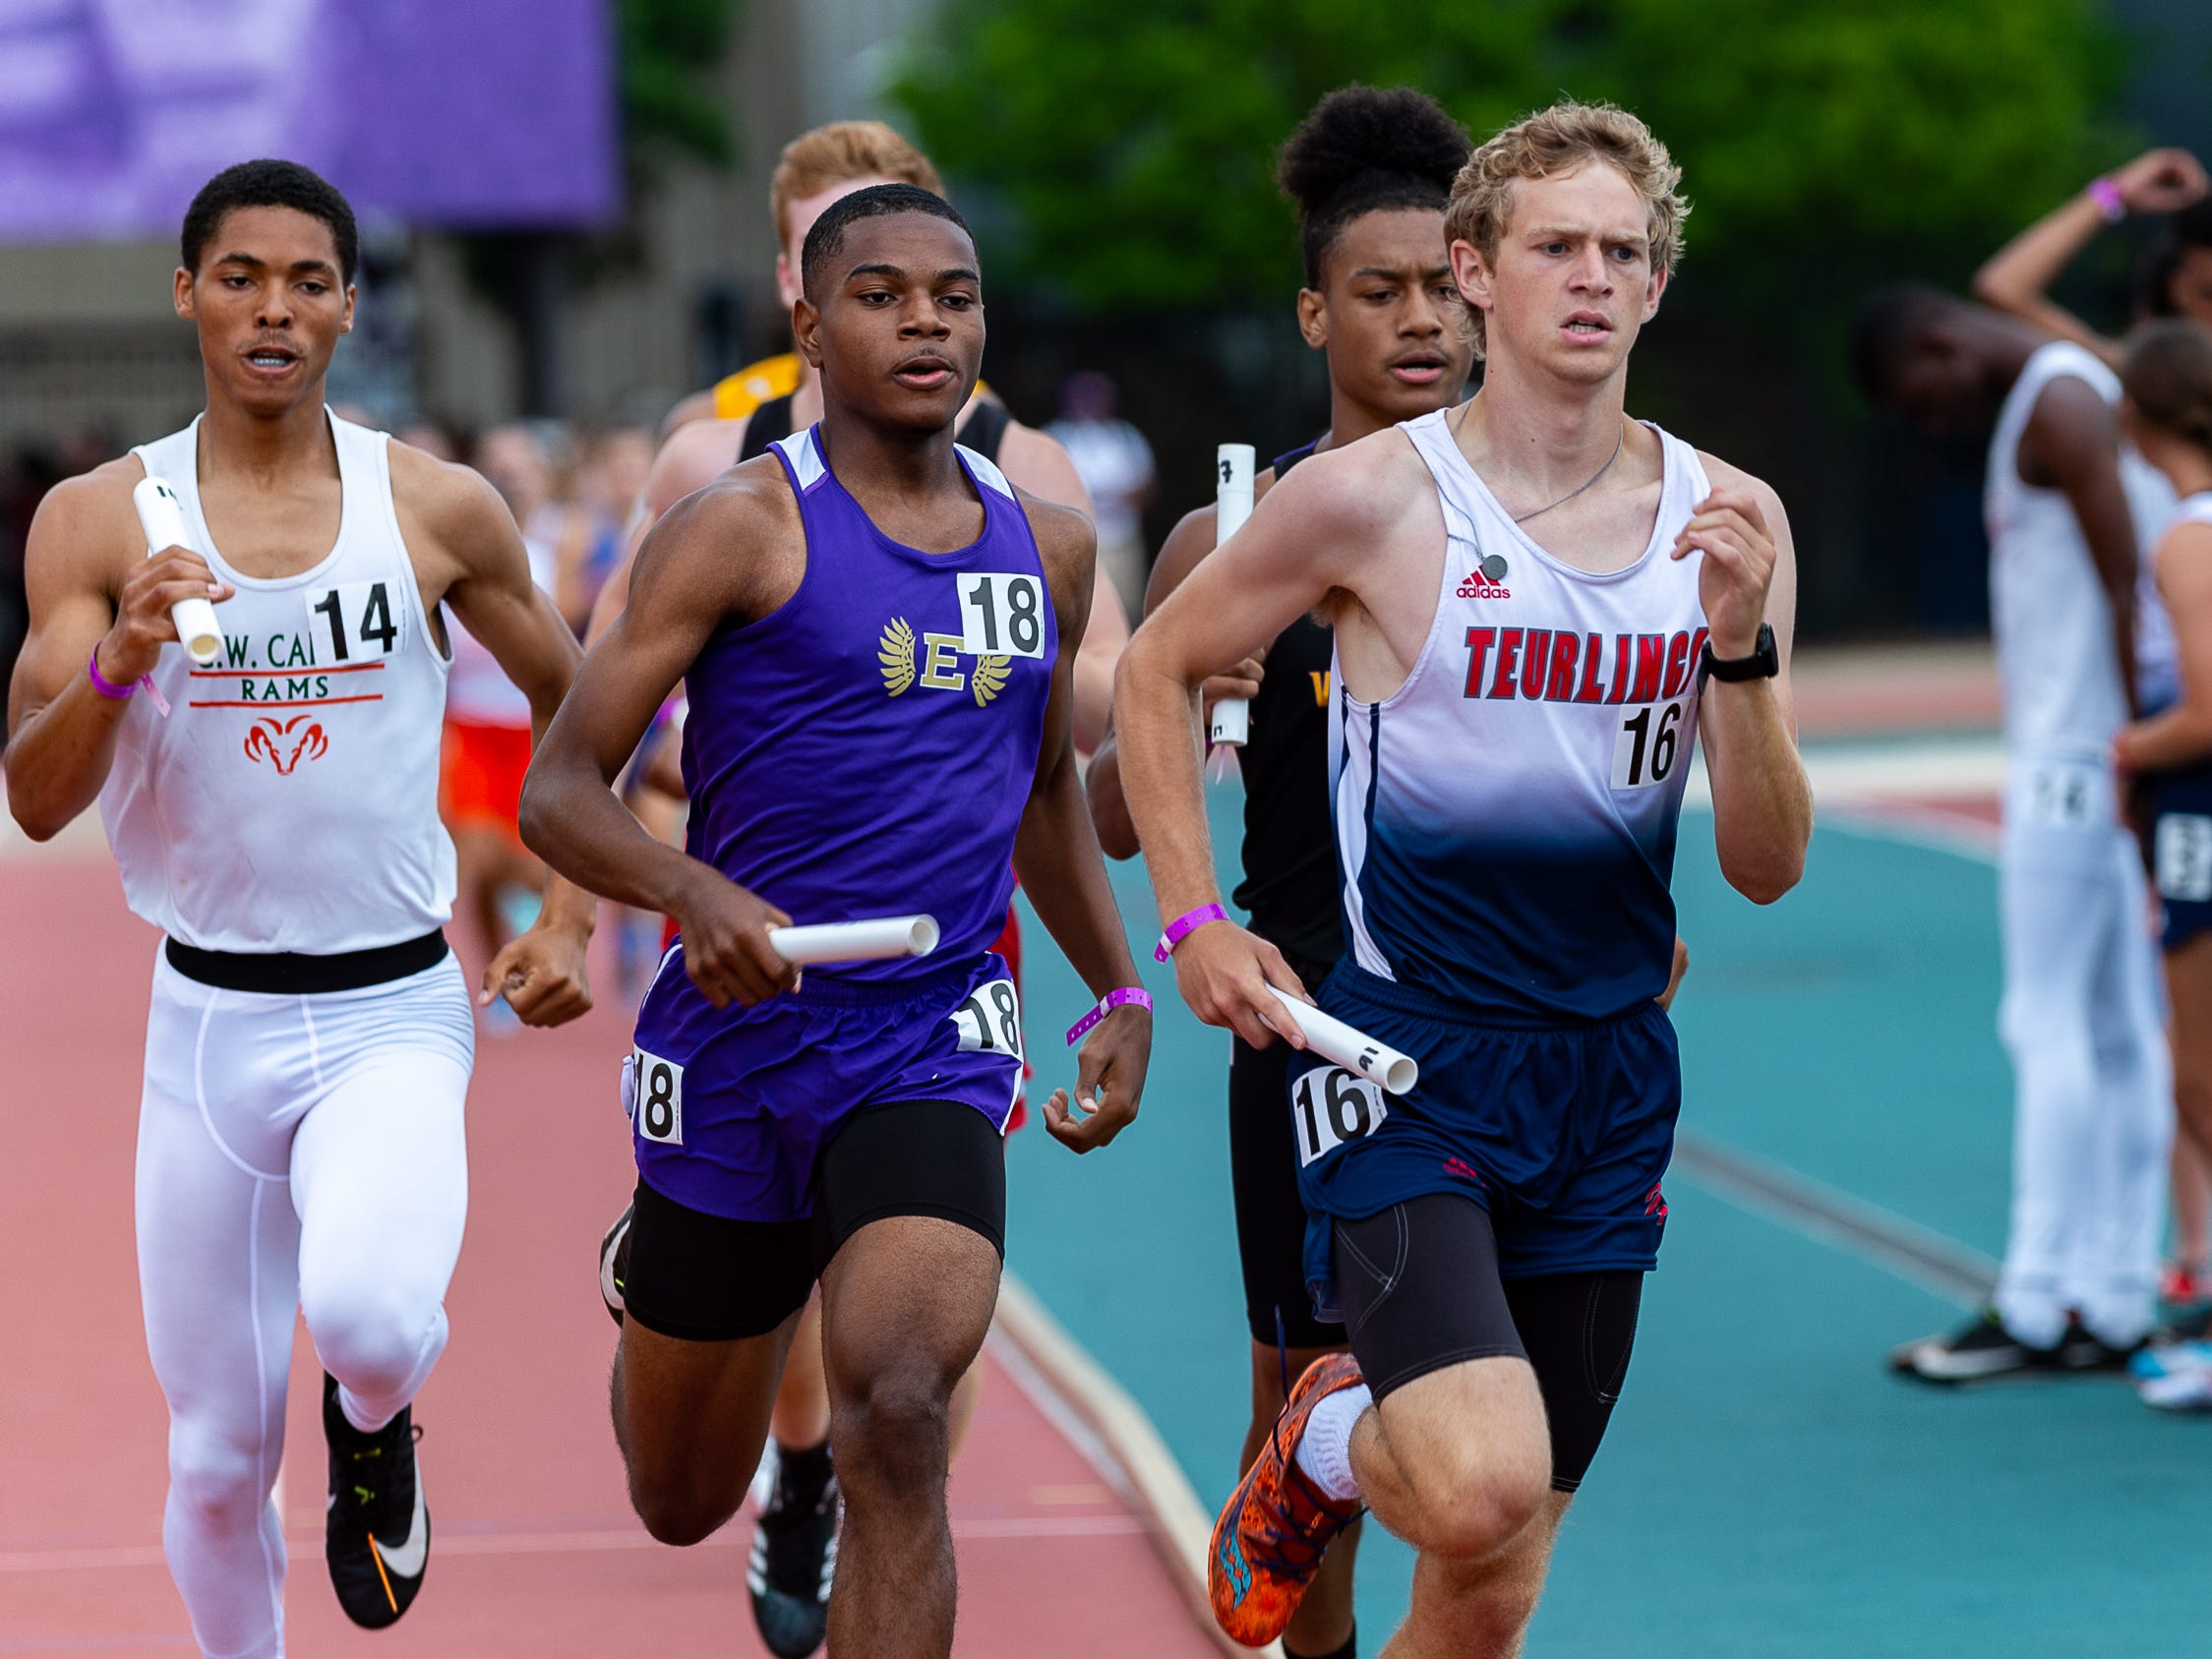 Boys 4x800 relay at the The LHSAA Sate Track Meet at Bernie Moore Track in Baton Rouge, LA. Saturday, May 4, 2019.